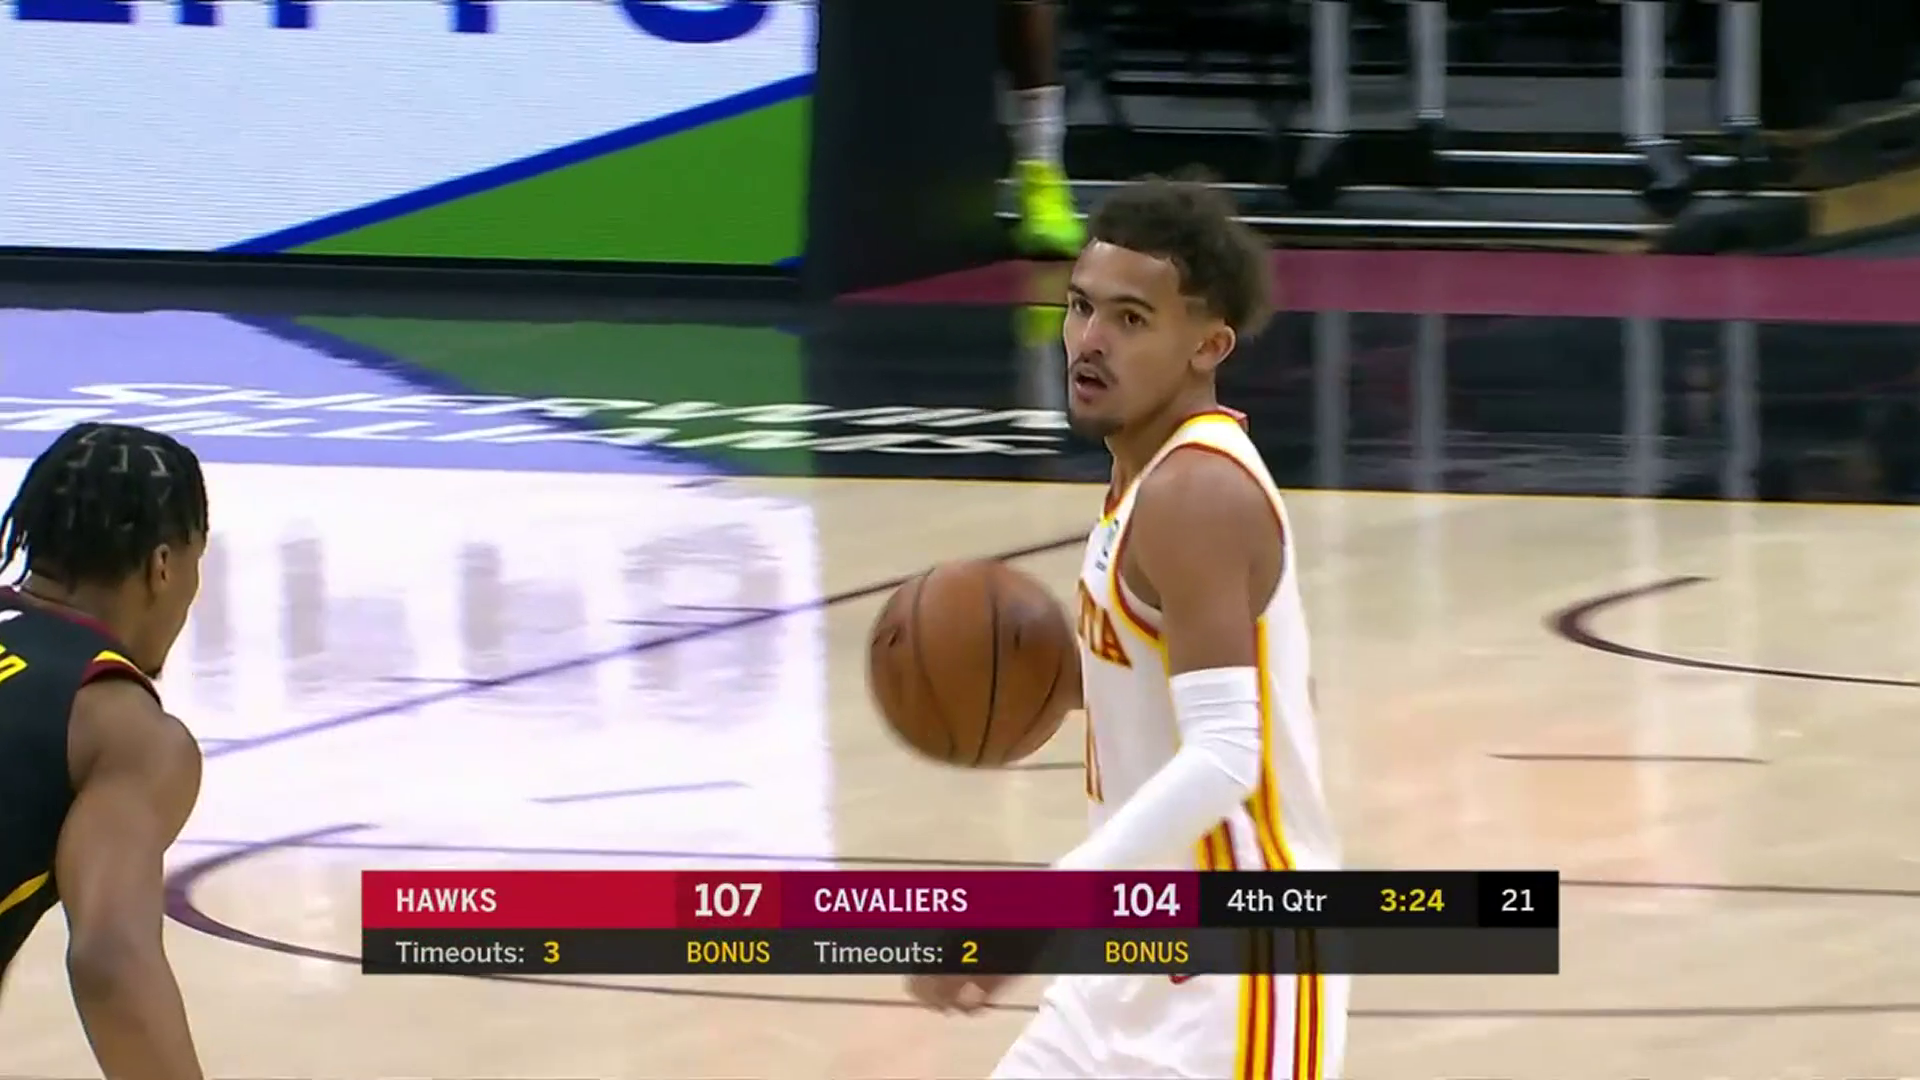 Young Leads Hawks With 28 Points in Close Contest vs. Cavs